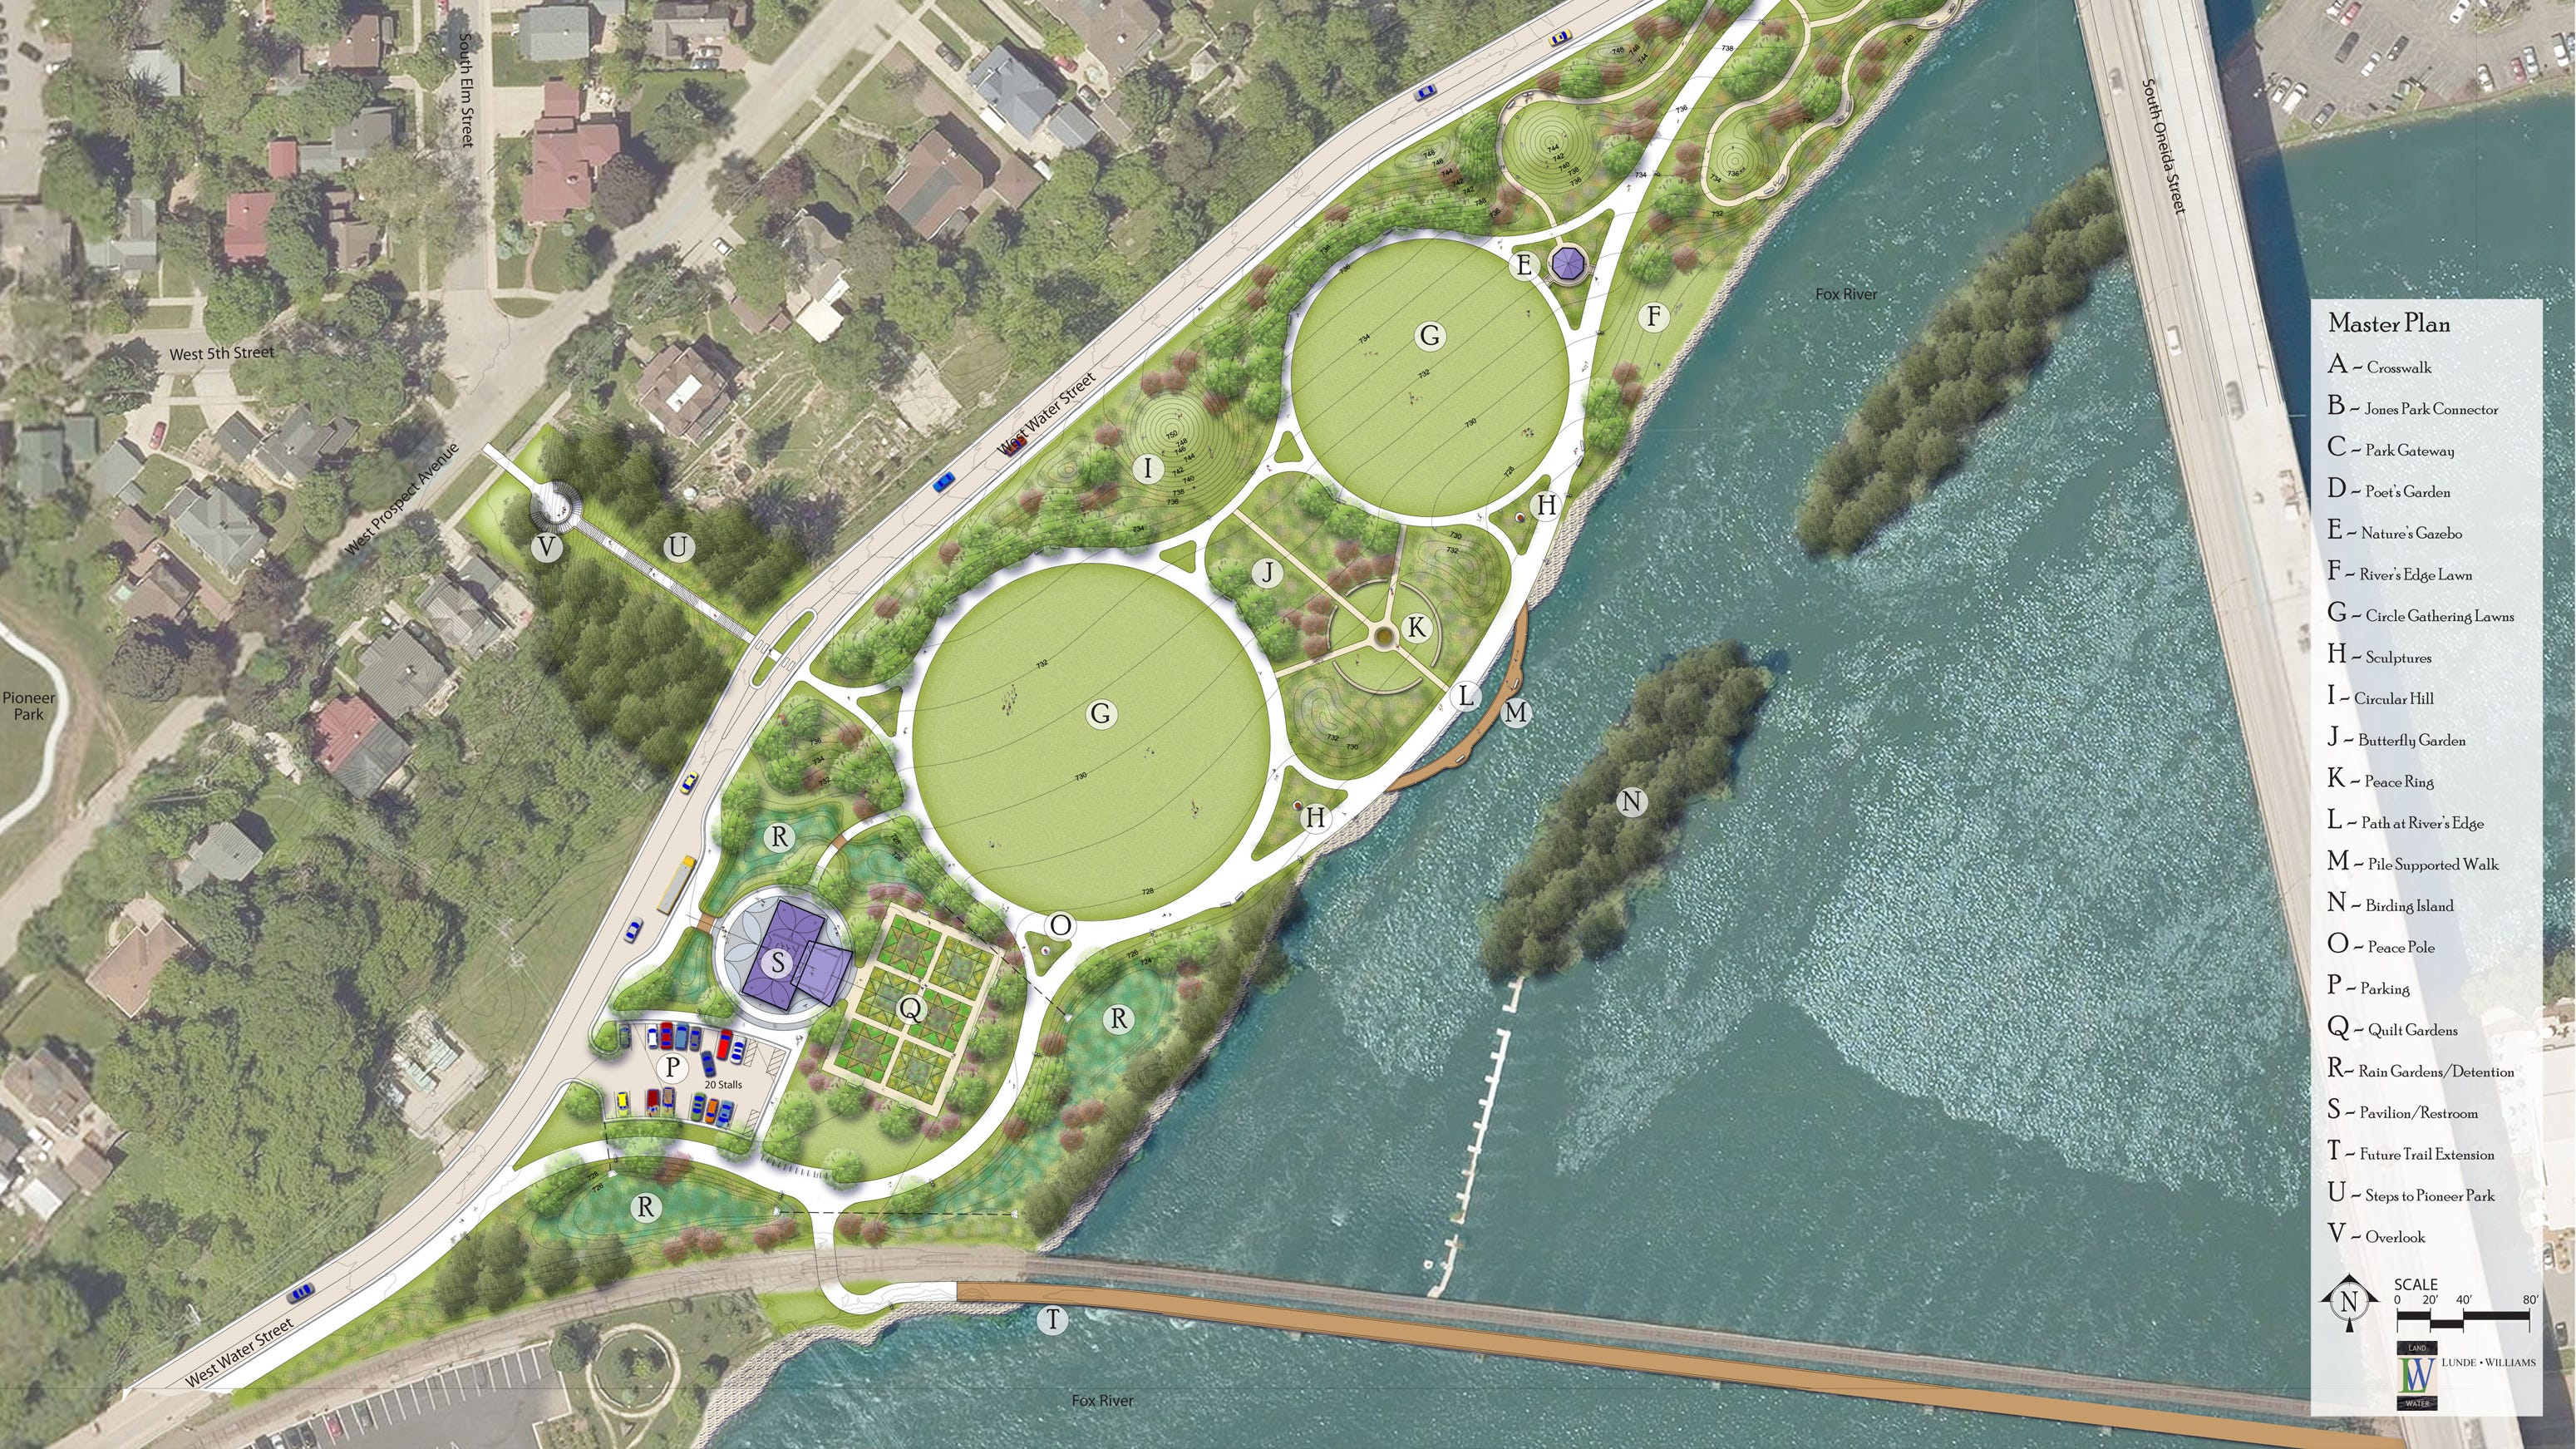 www gratulationskort com Riverfront renewal: Appleton to build Ellen Kort Peace Park in phases www gratulationskort com